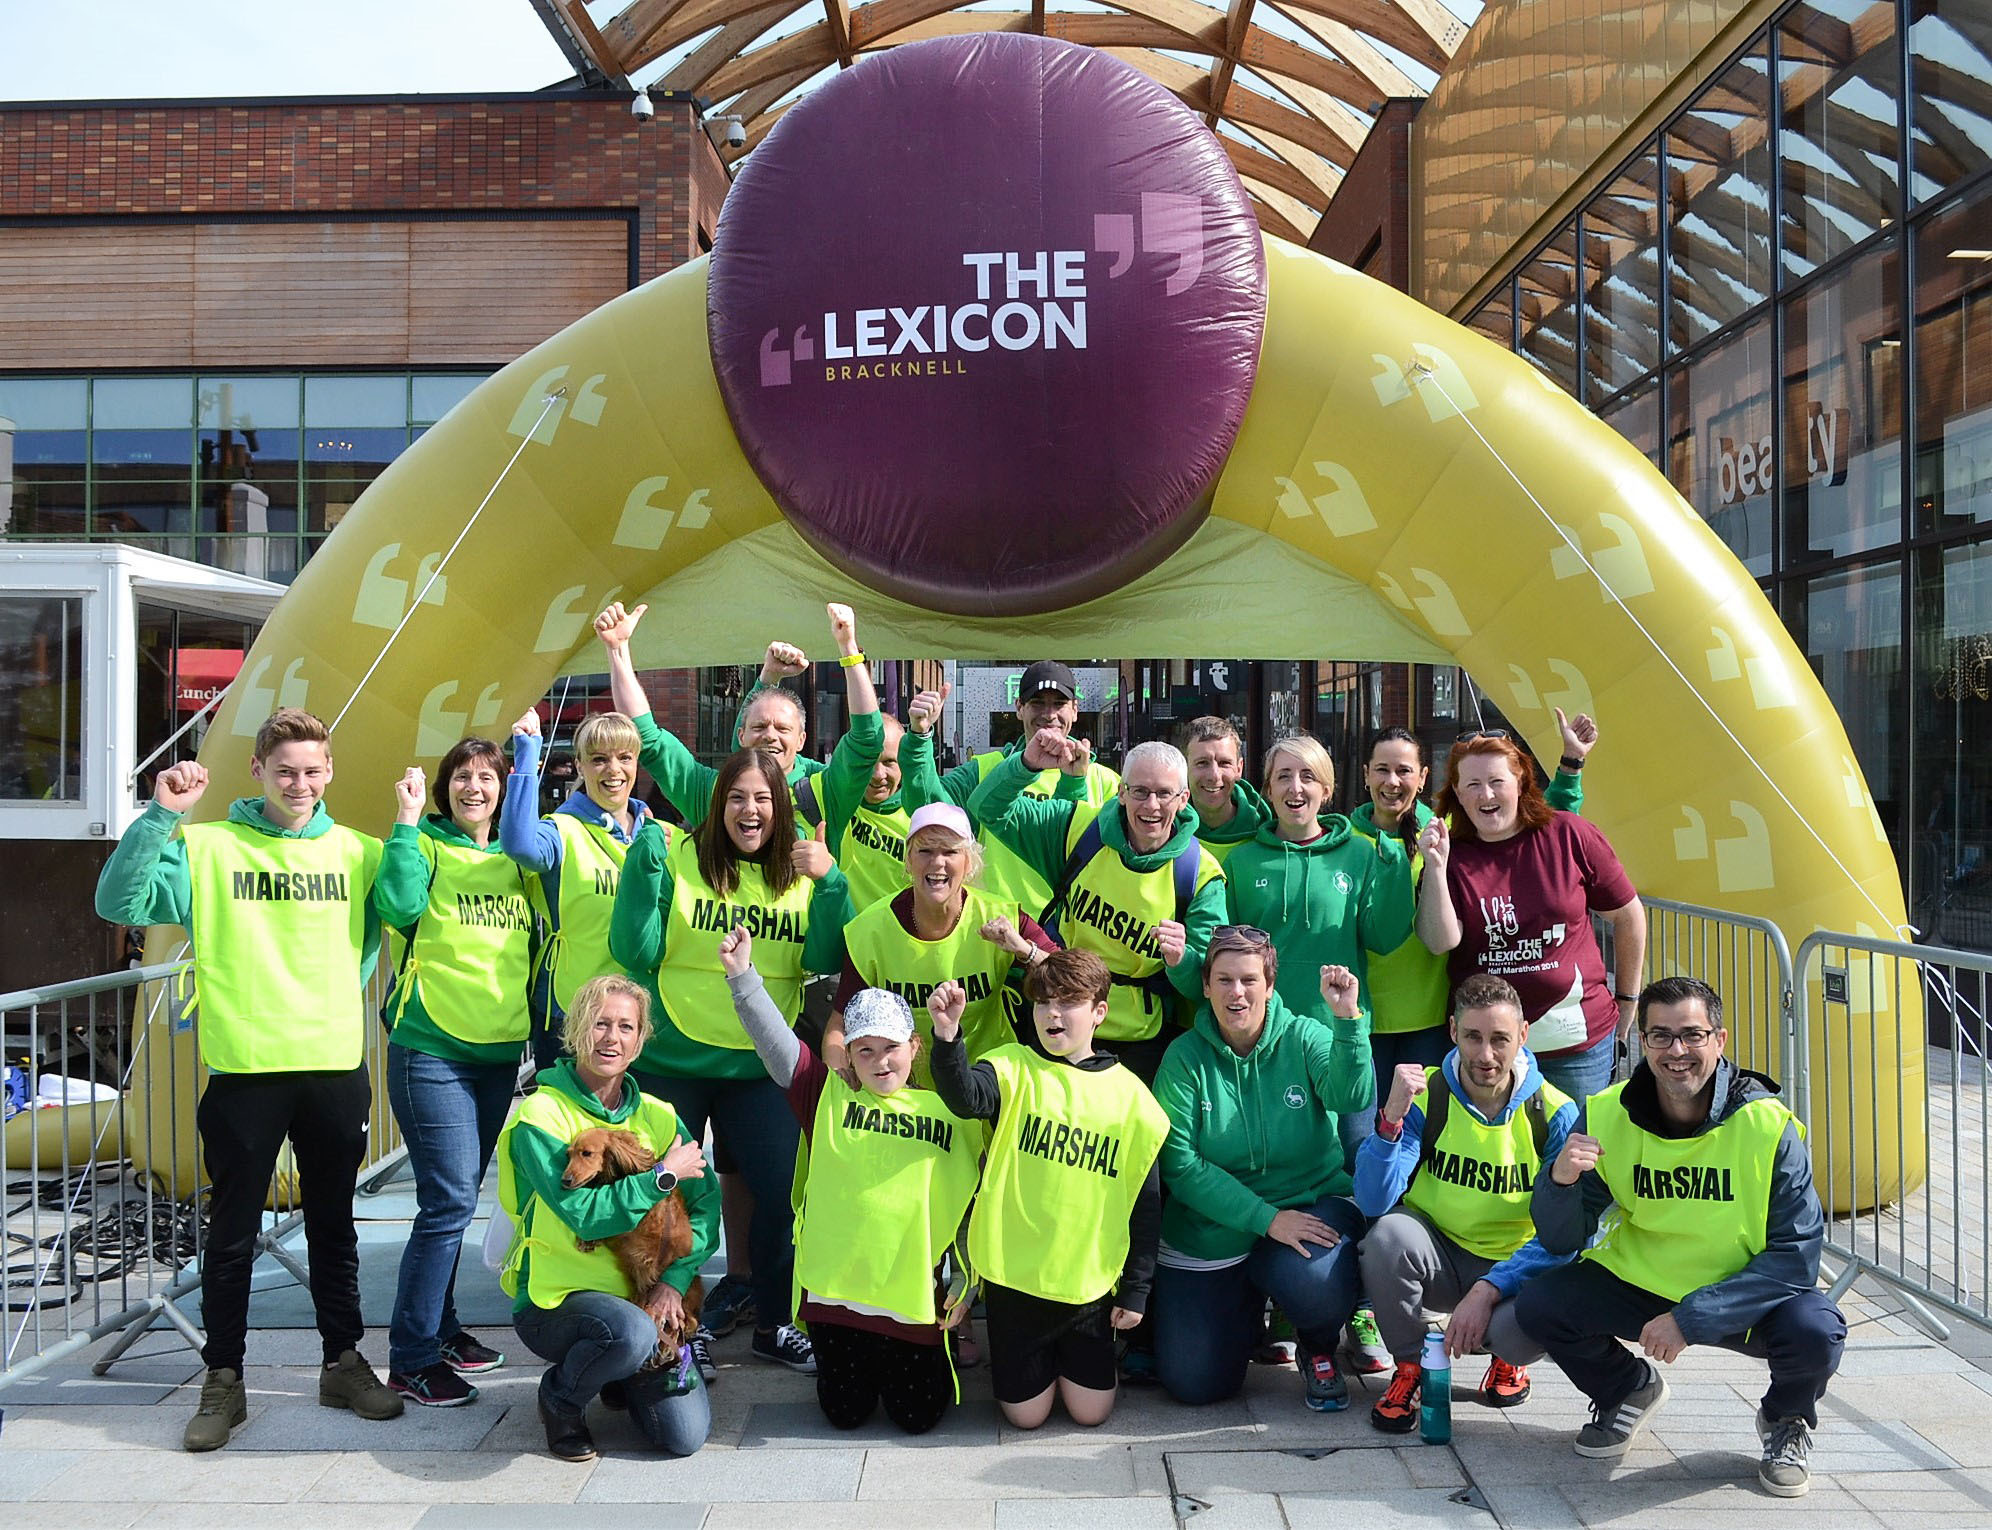 180551 Bracknell Half Marathon marshals at finish line in The Lexicon pic chris forsey 13/5/18.